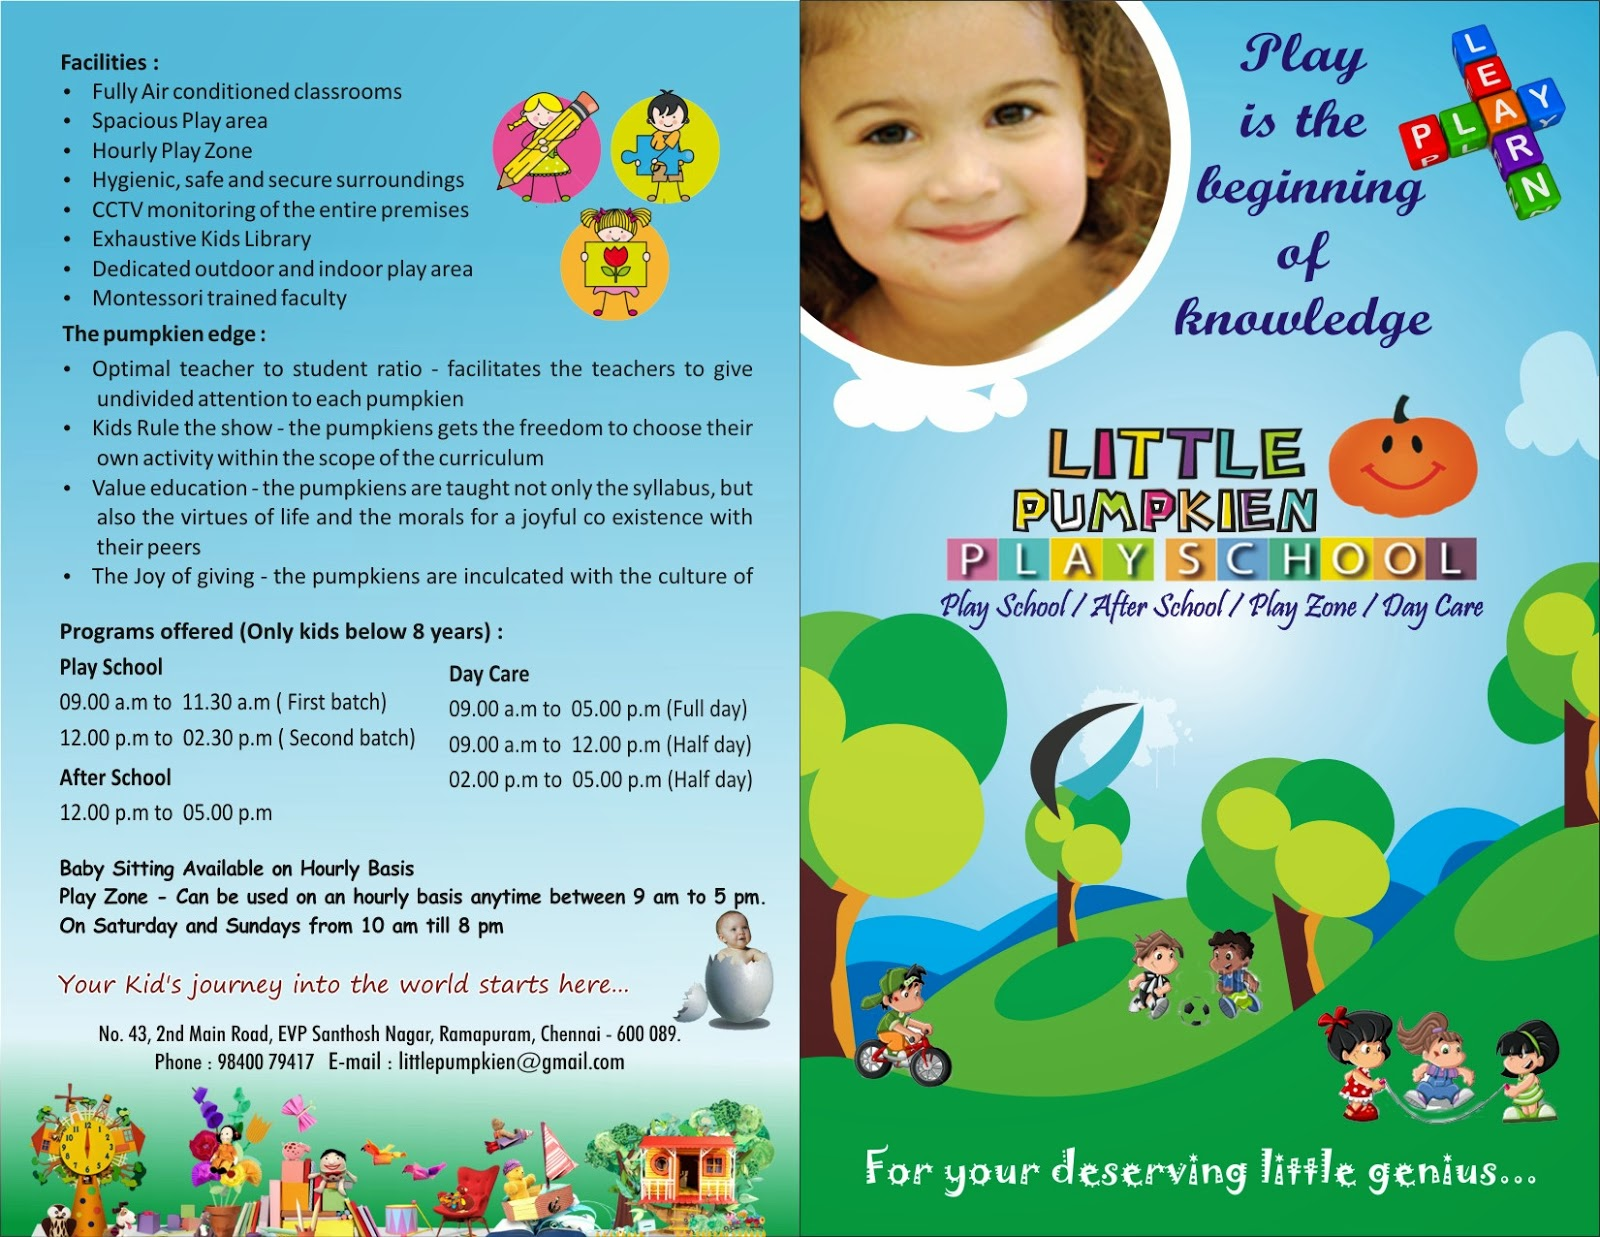 playschool in ramapuram chennai little pumpkien playschool littlepumpkienplayschool com index html